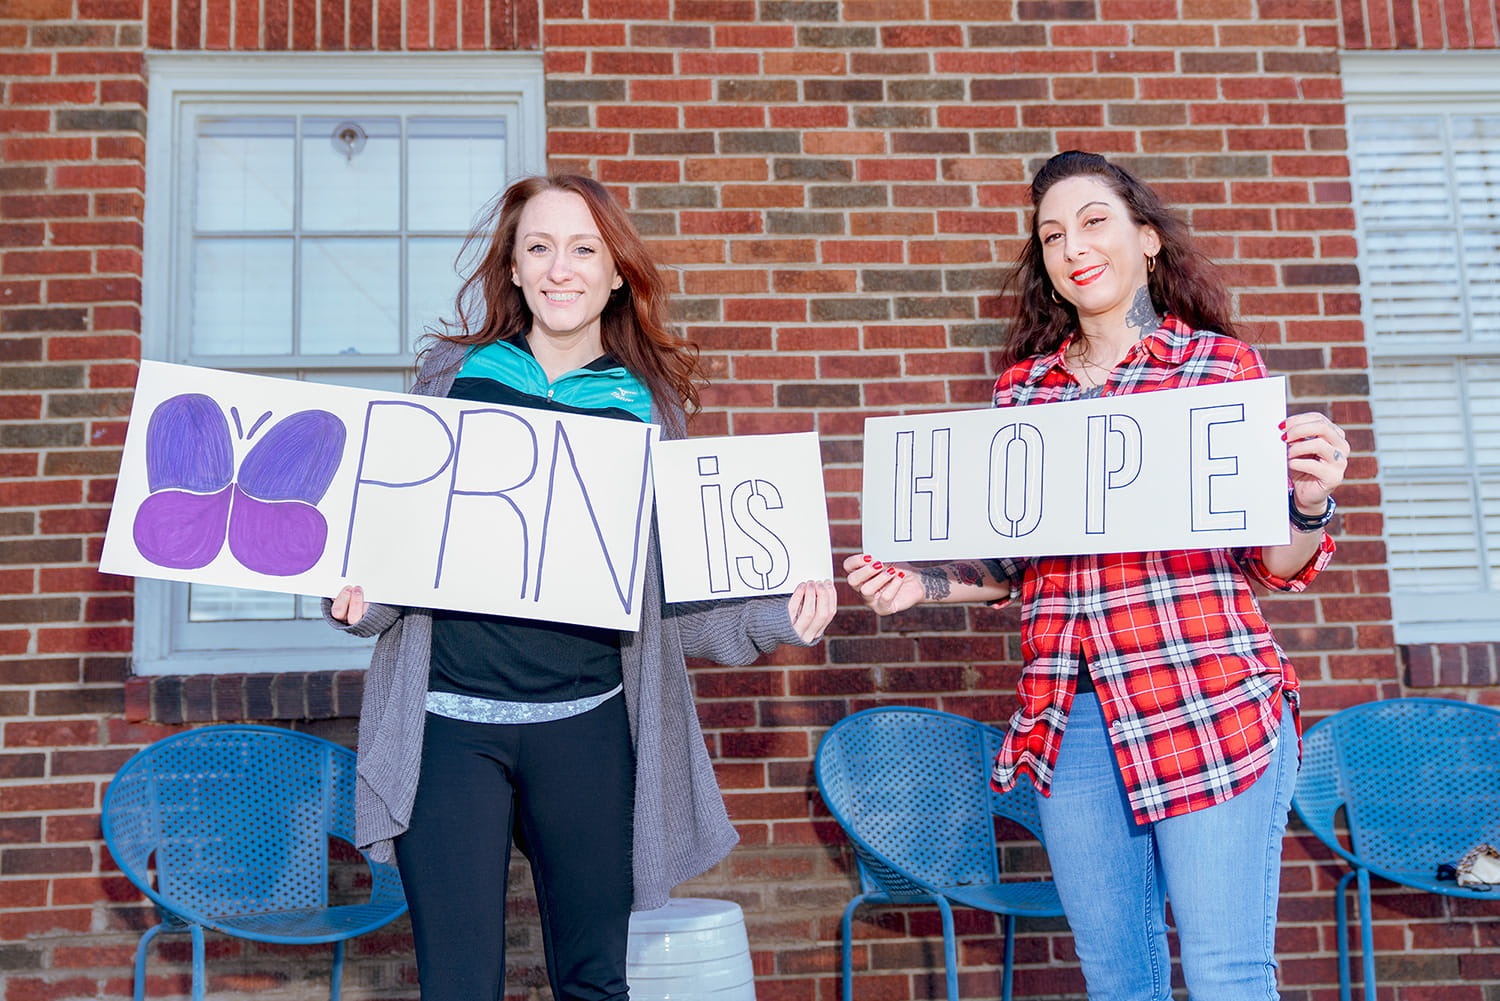 PRN is Hope